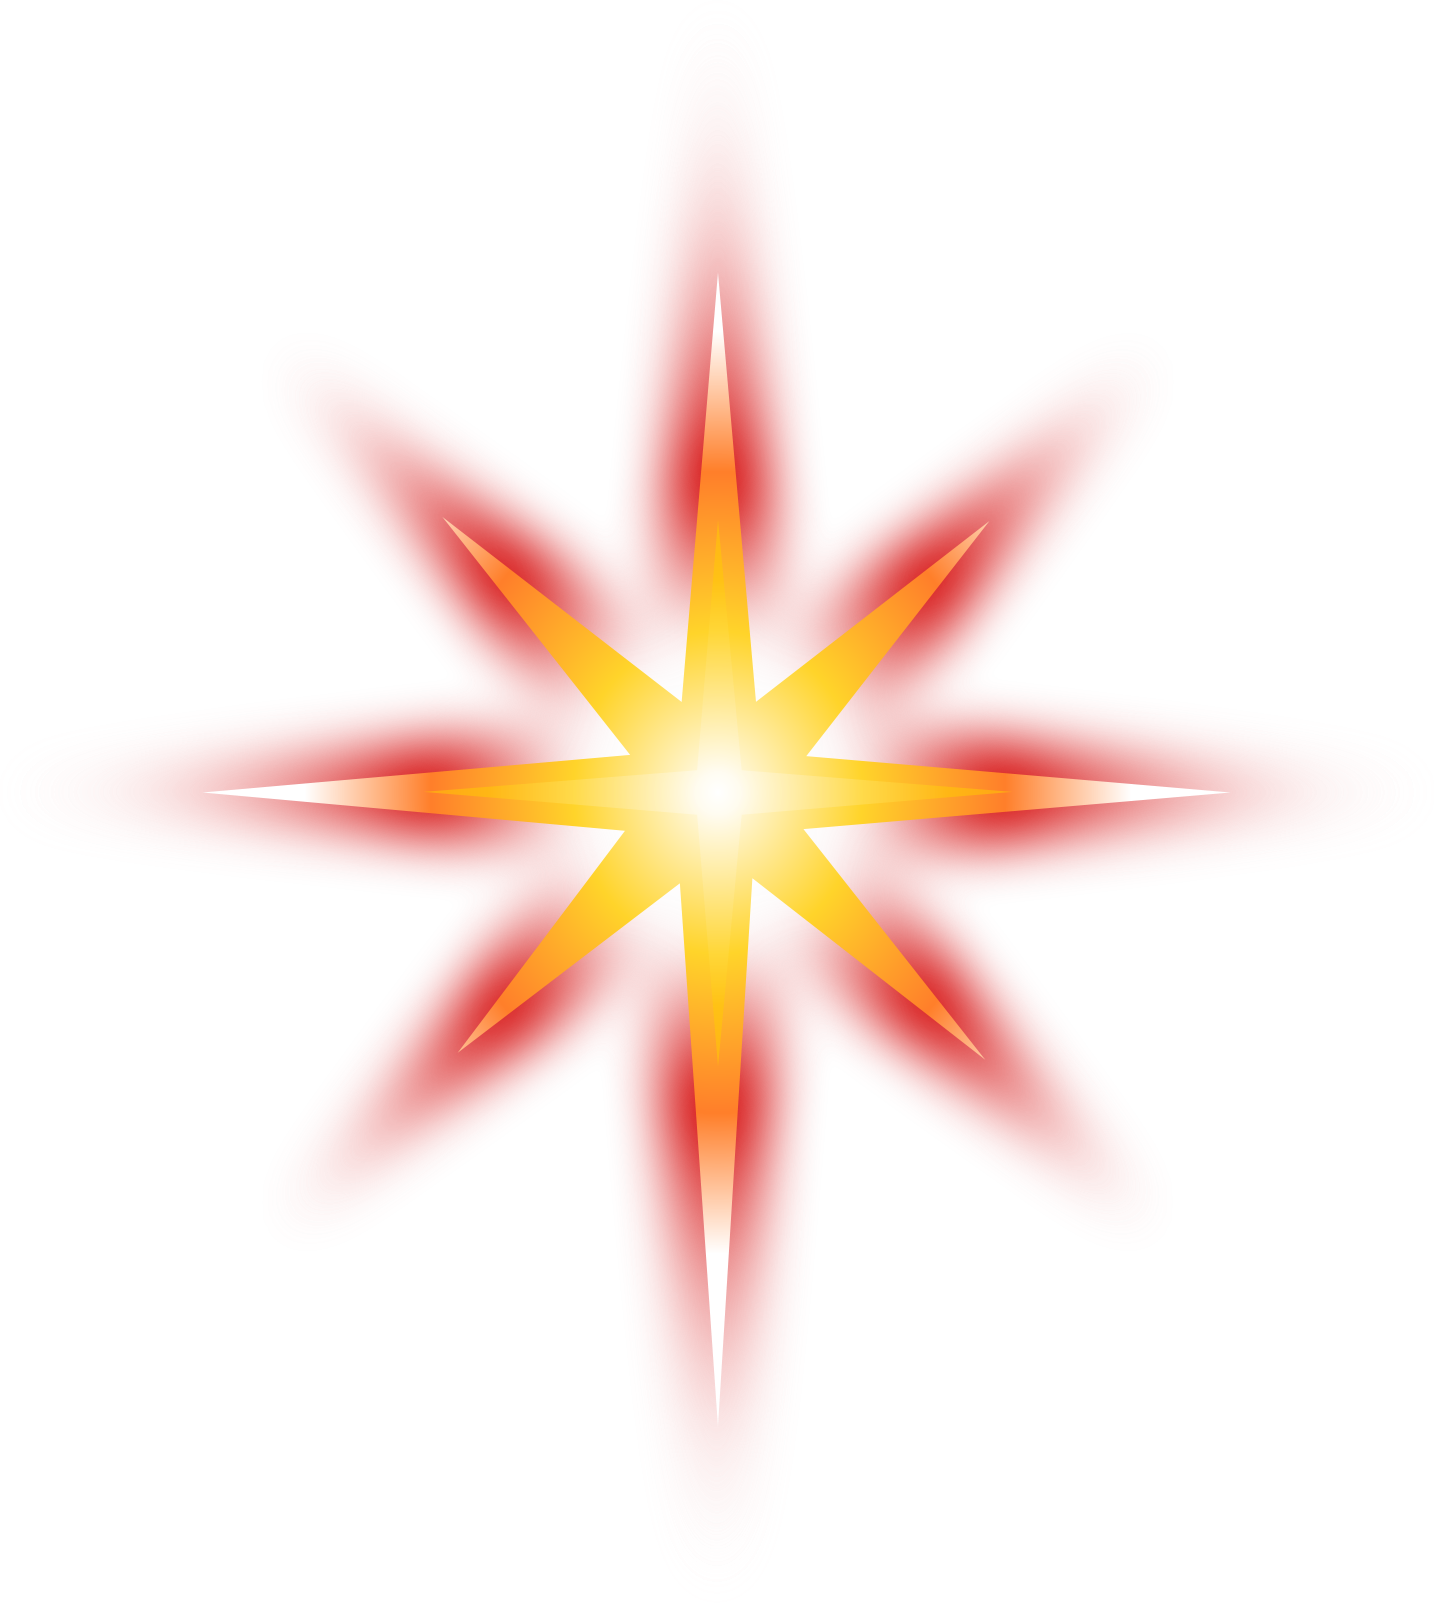 Star in space clipart picture library library Clipart - Fire Star picture library library